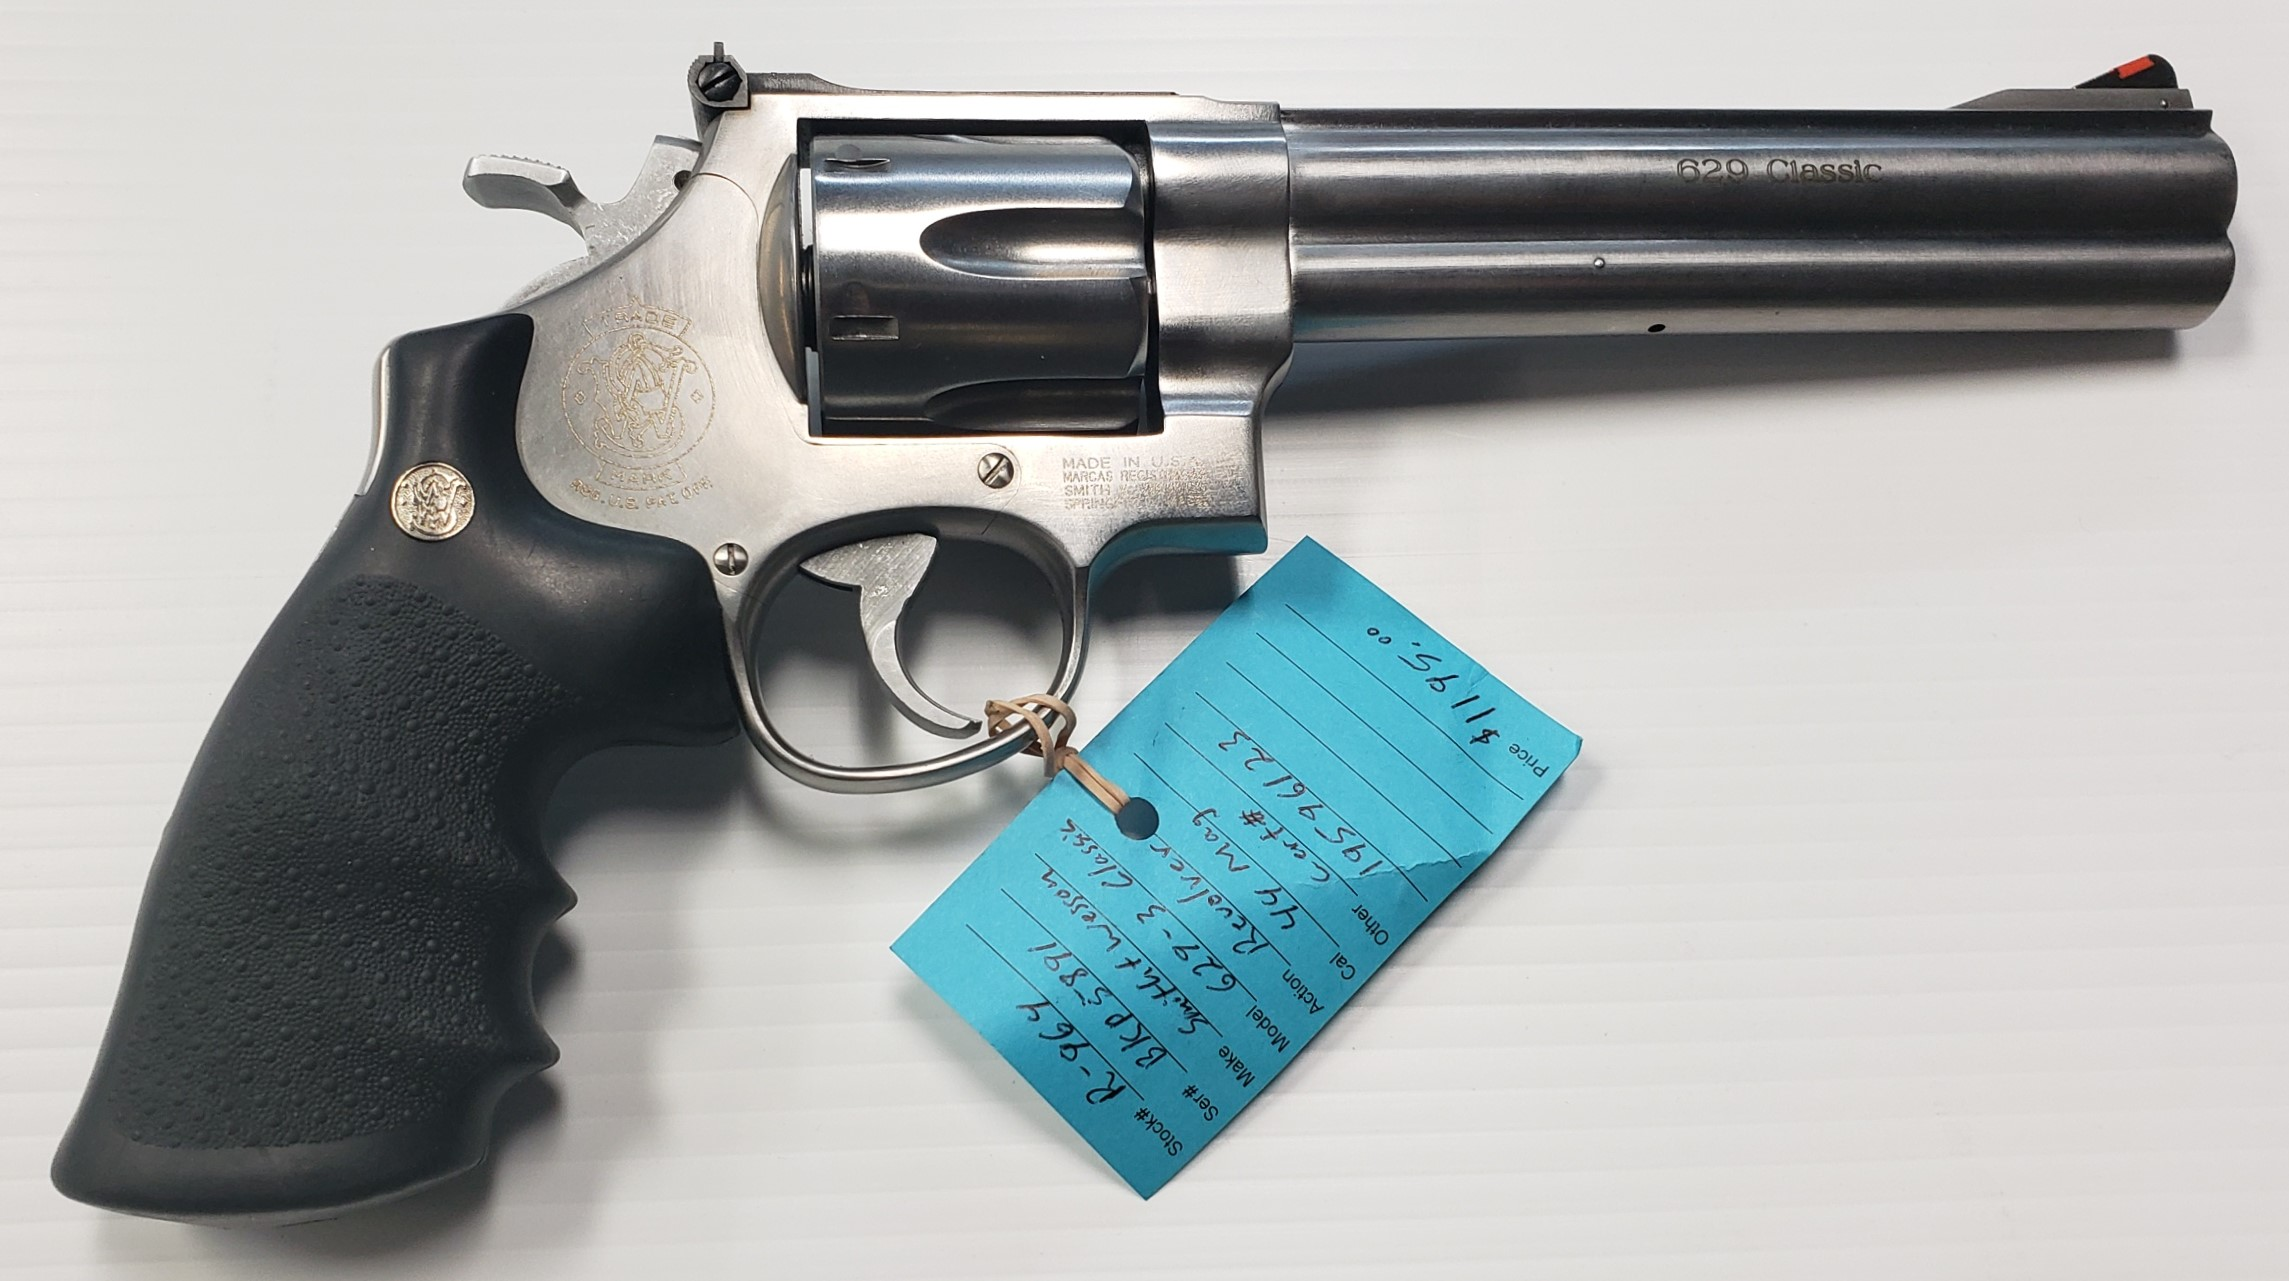 Smith & Wesson 629 .44 magnum (used)